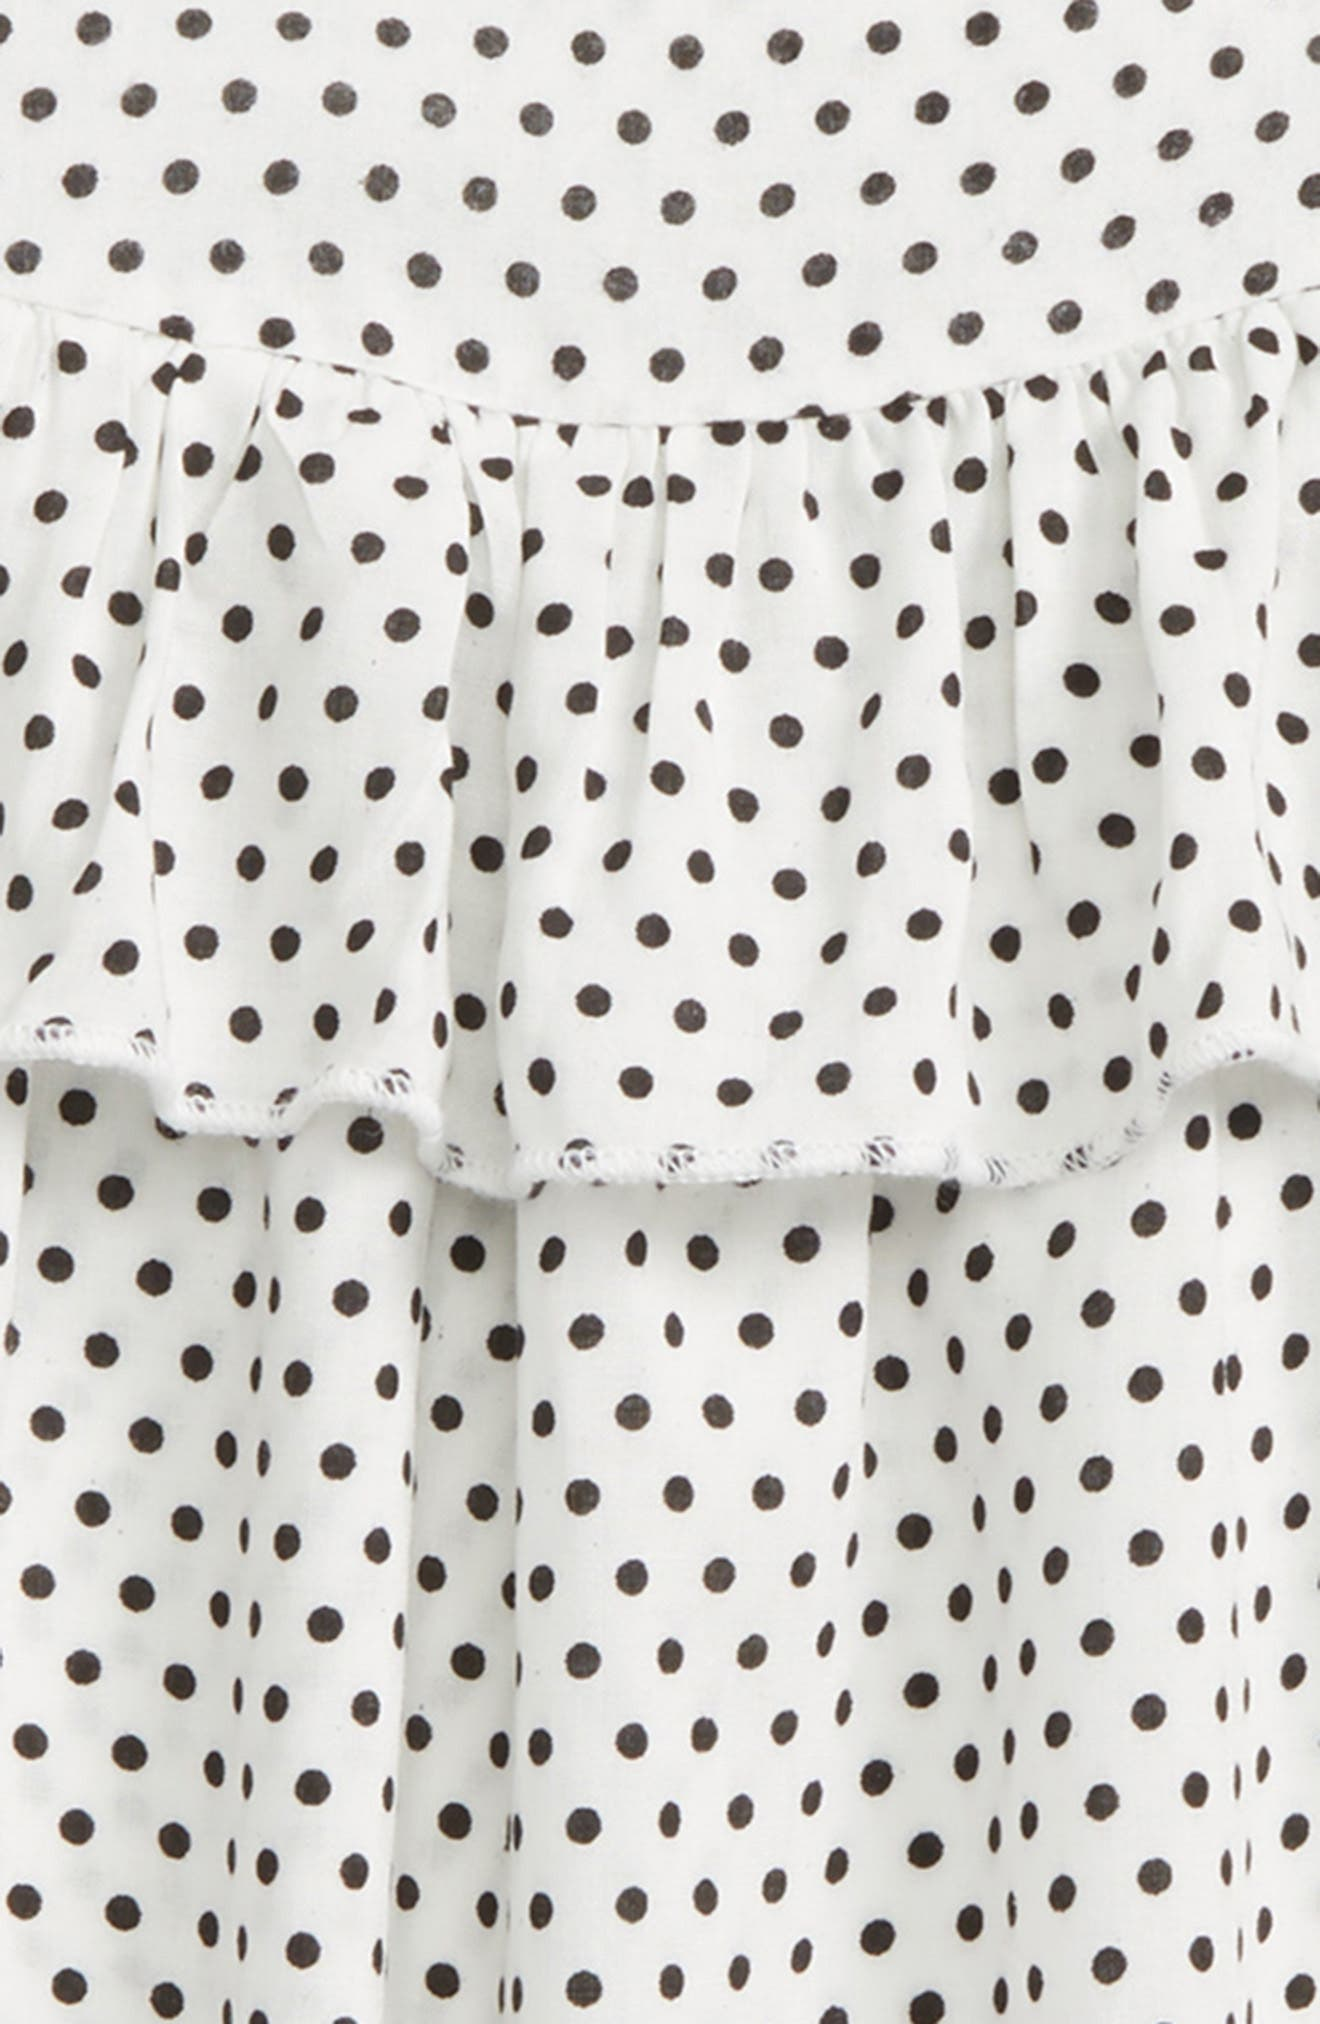 Ruffle Polka Dot Tee,                             Alternate thumbnail 2, color,                             White/ Black